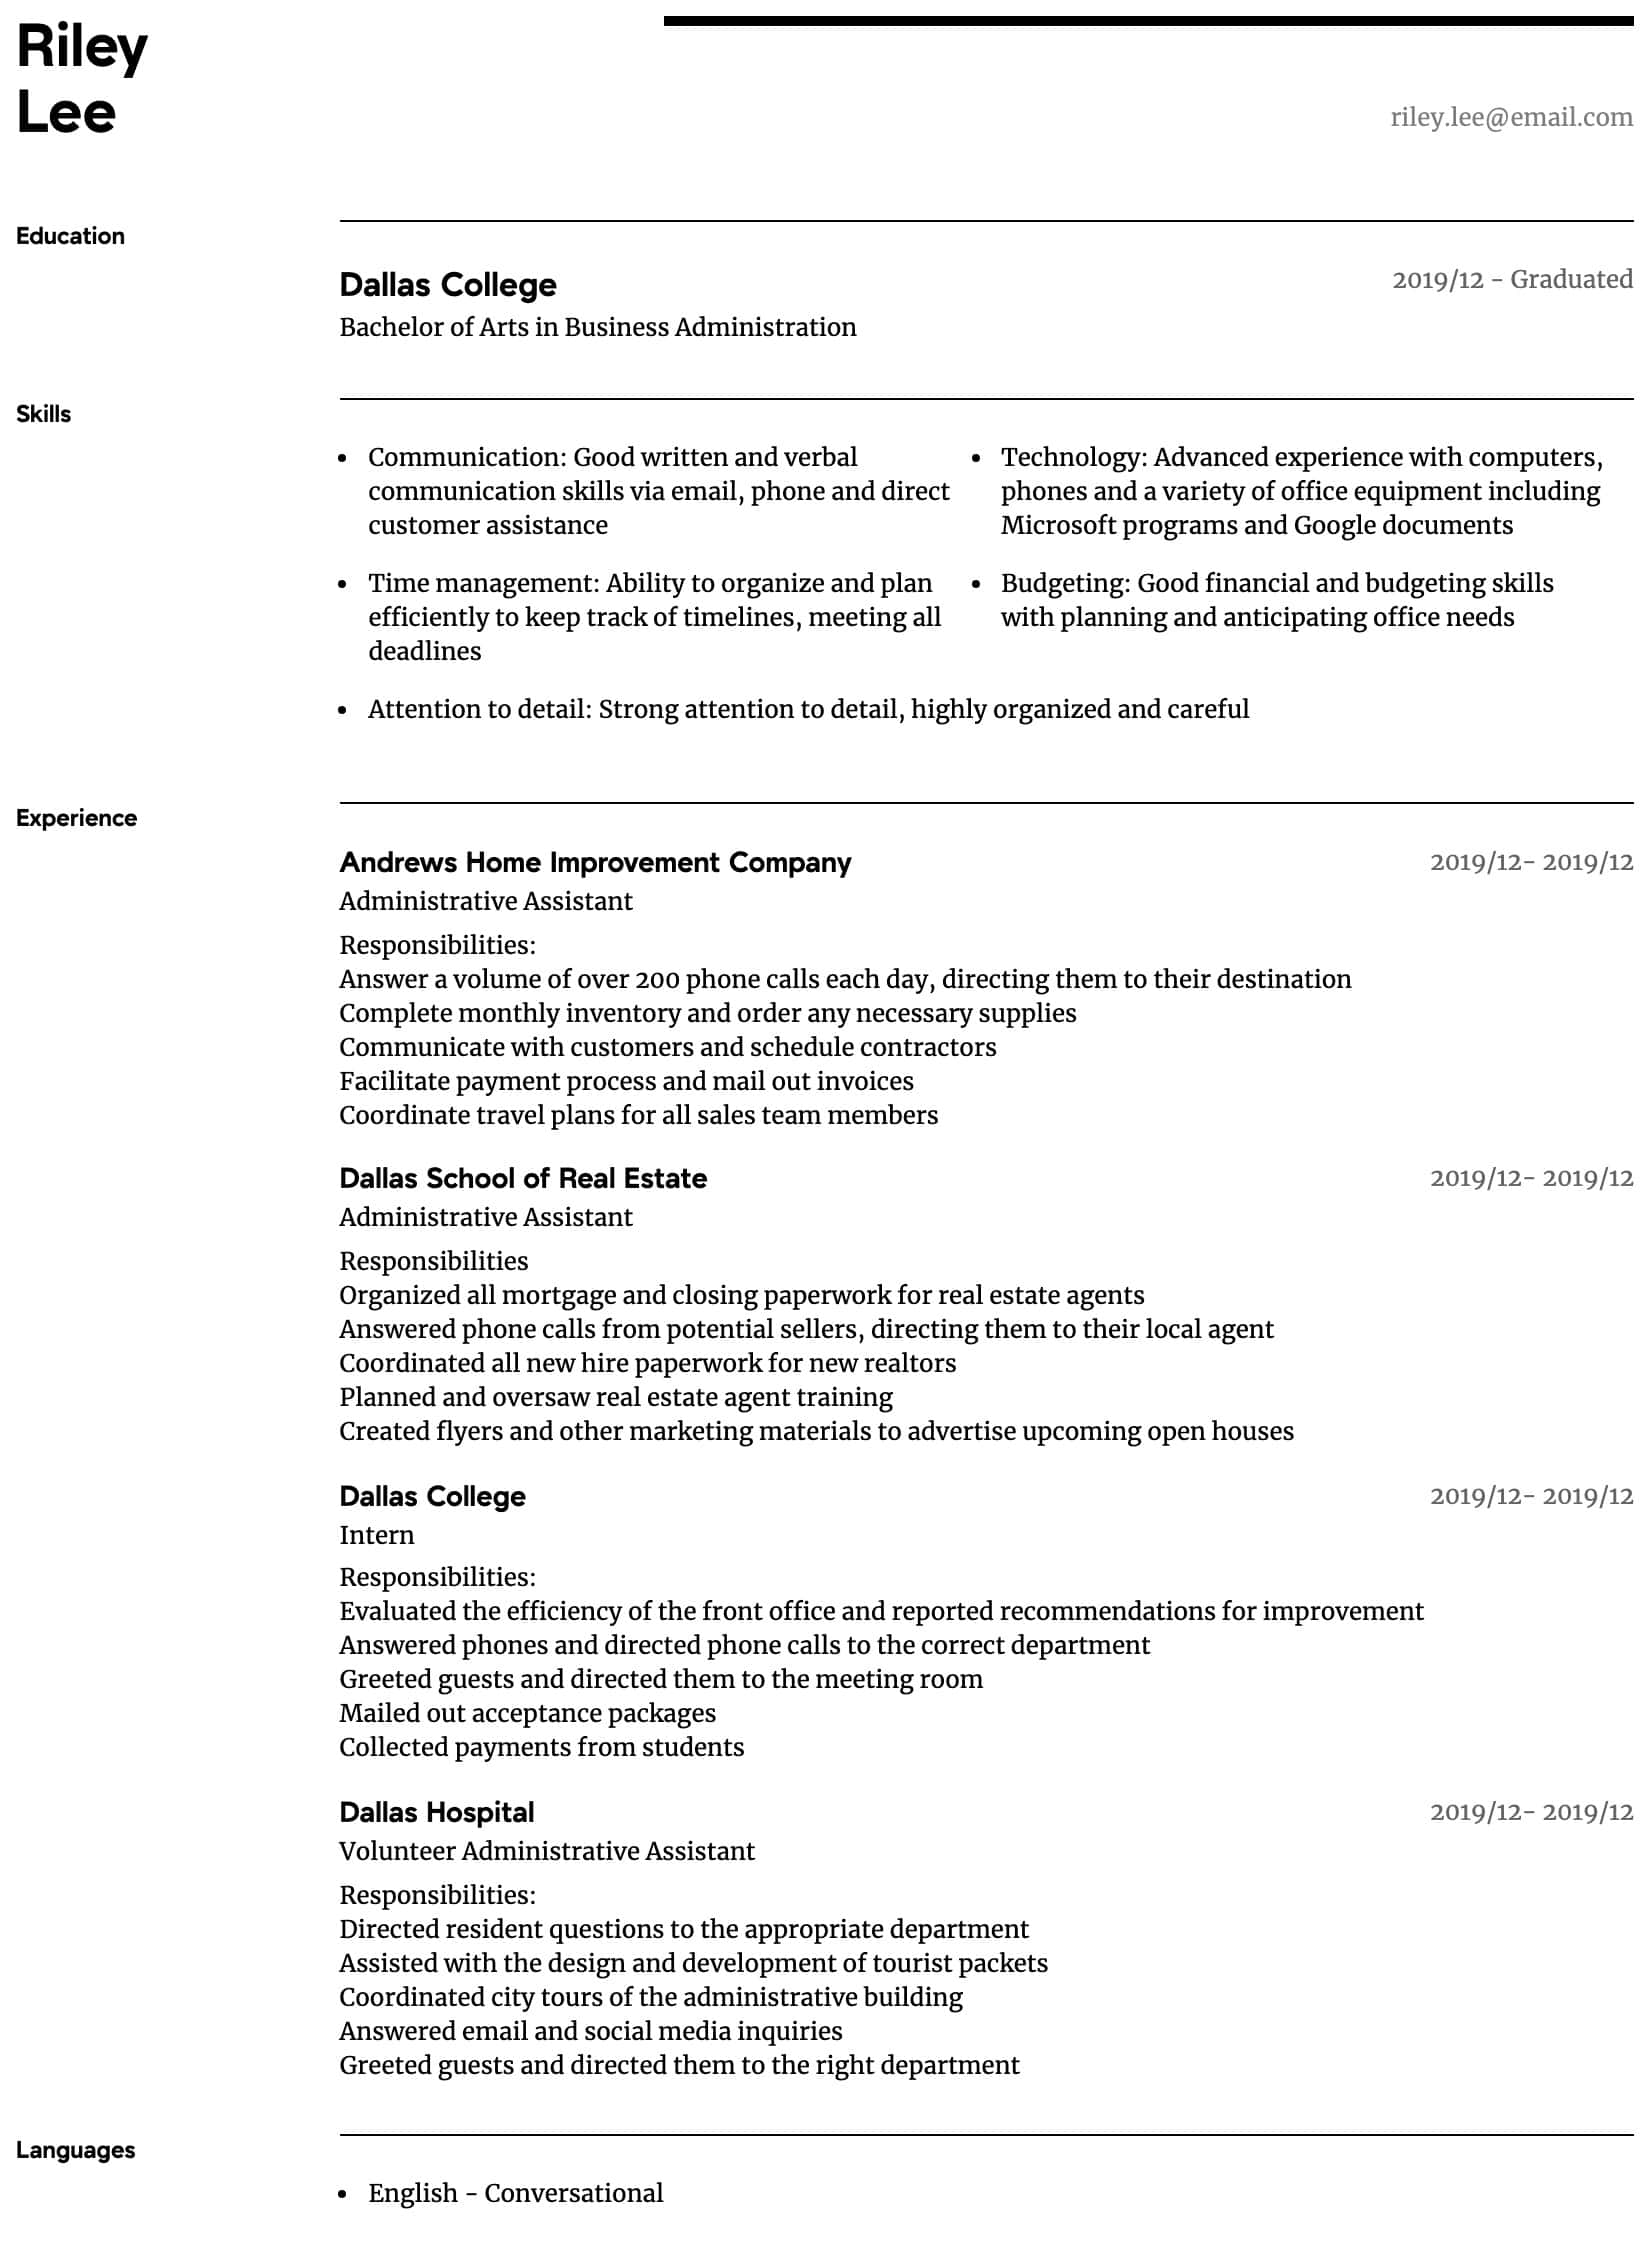 administrative assistant resume samples all experience levels office description Resume Office Assistant Resume Description